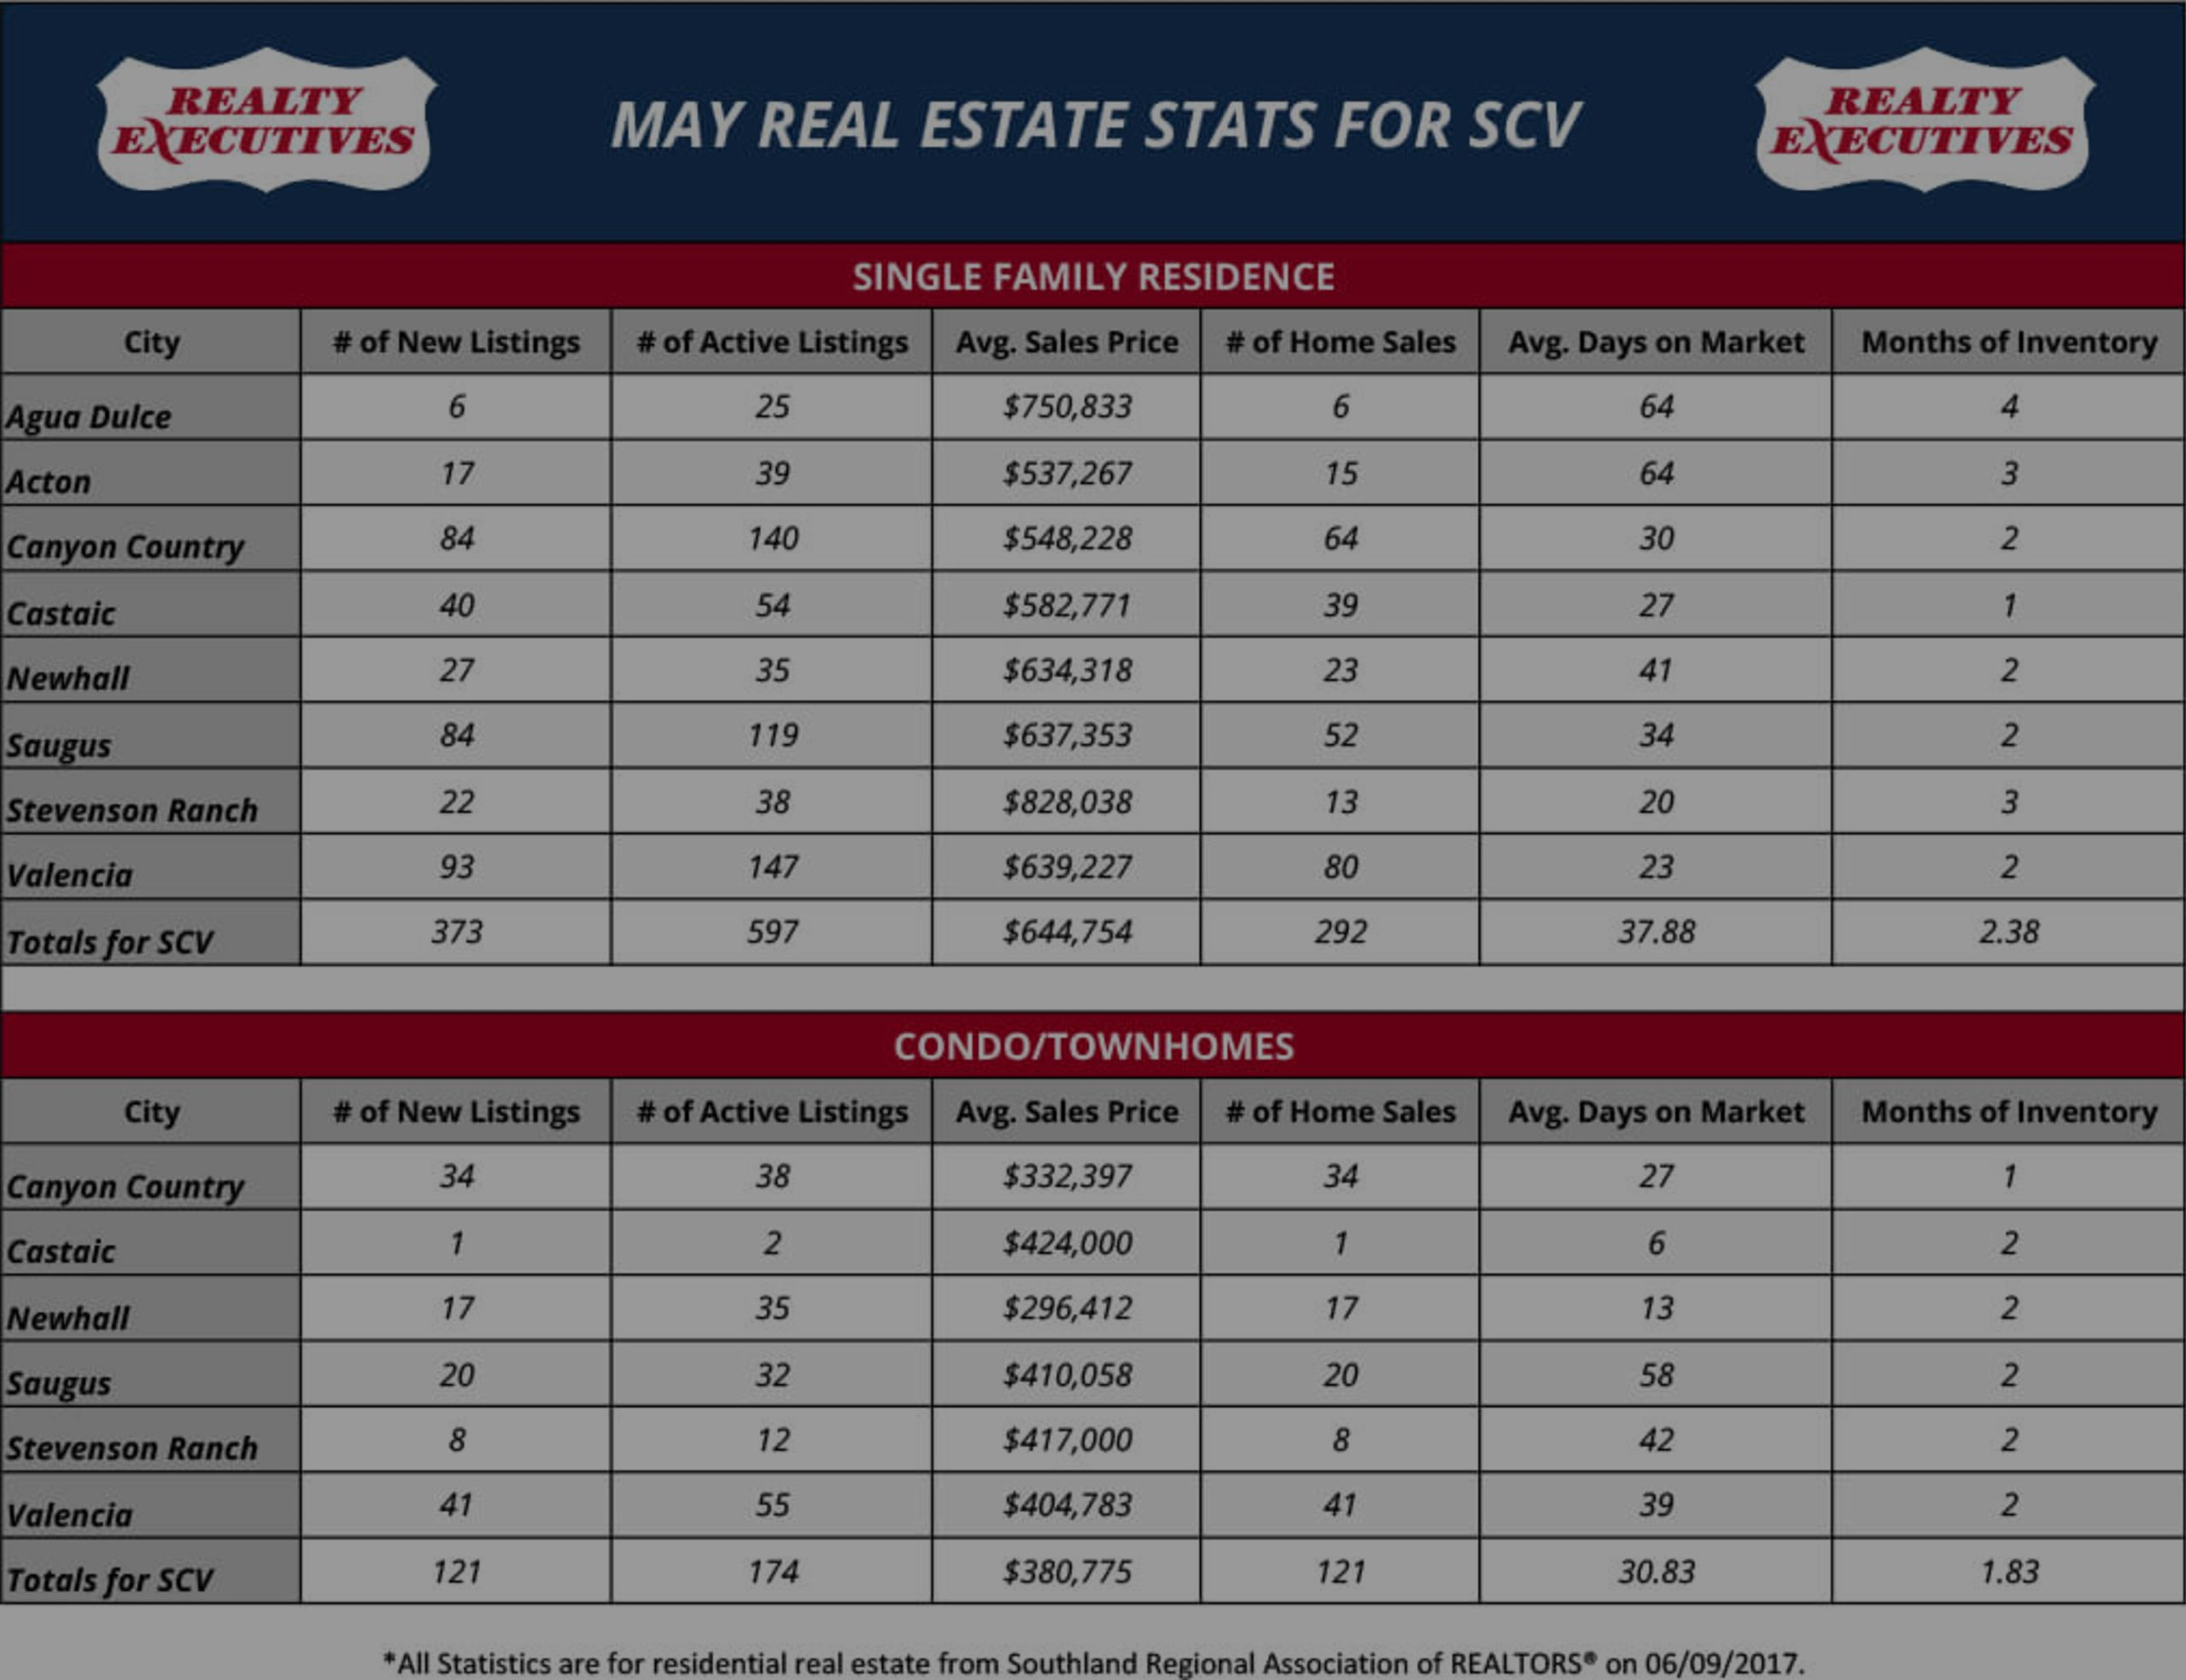 May 2017: Santa Clarita Real Estate Market Statistics